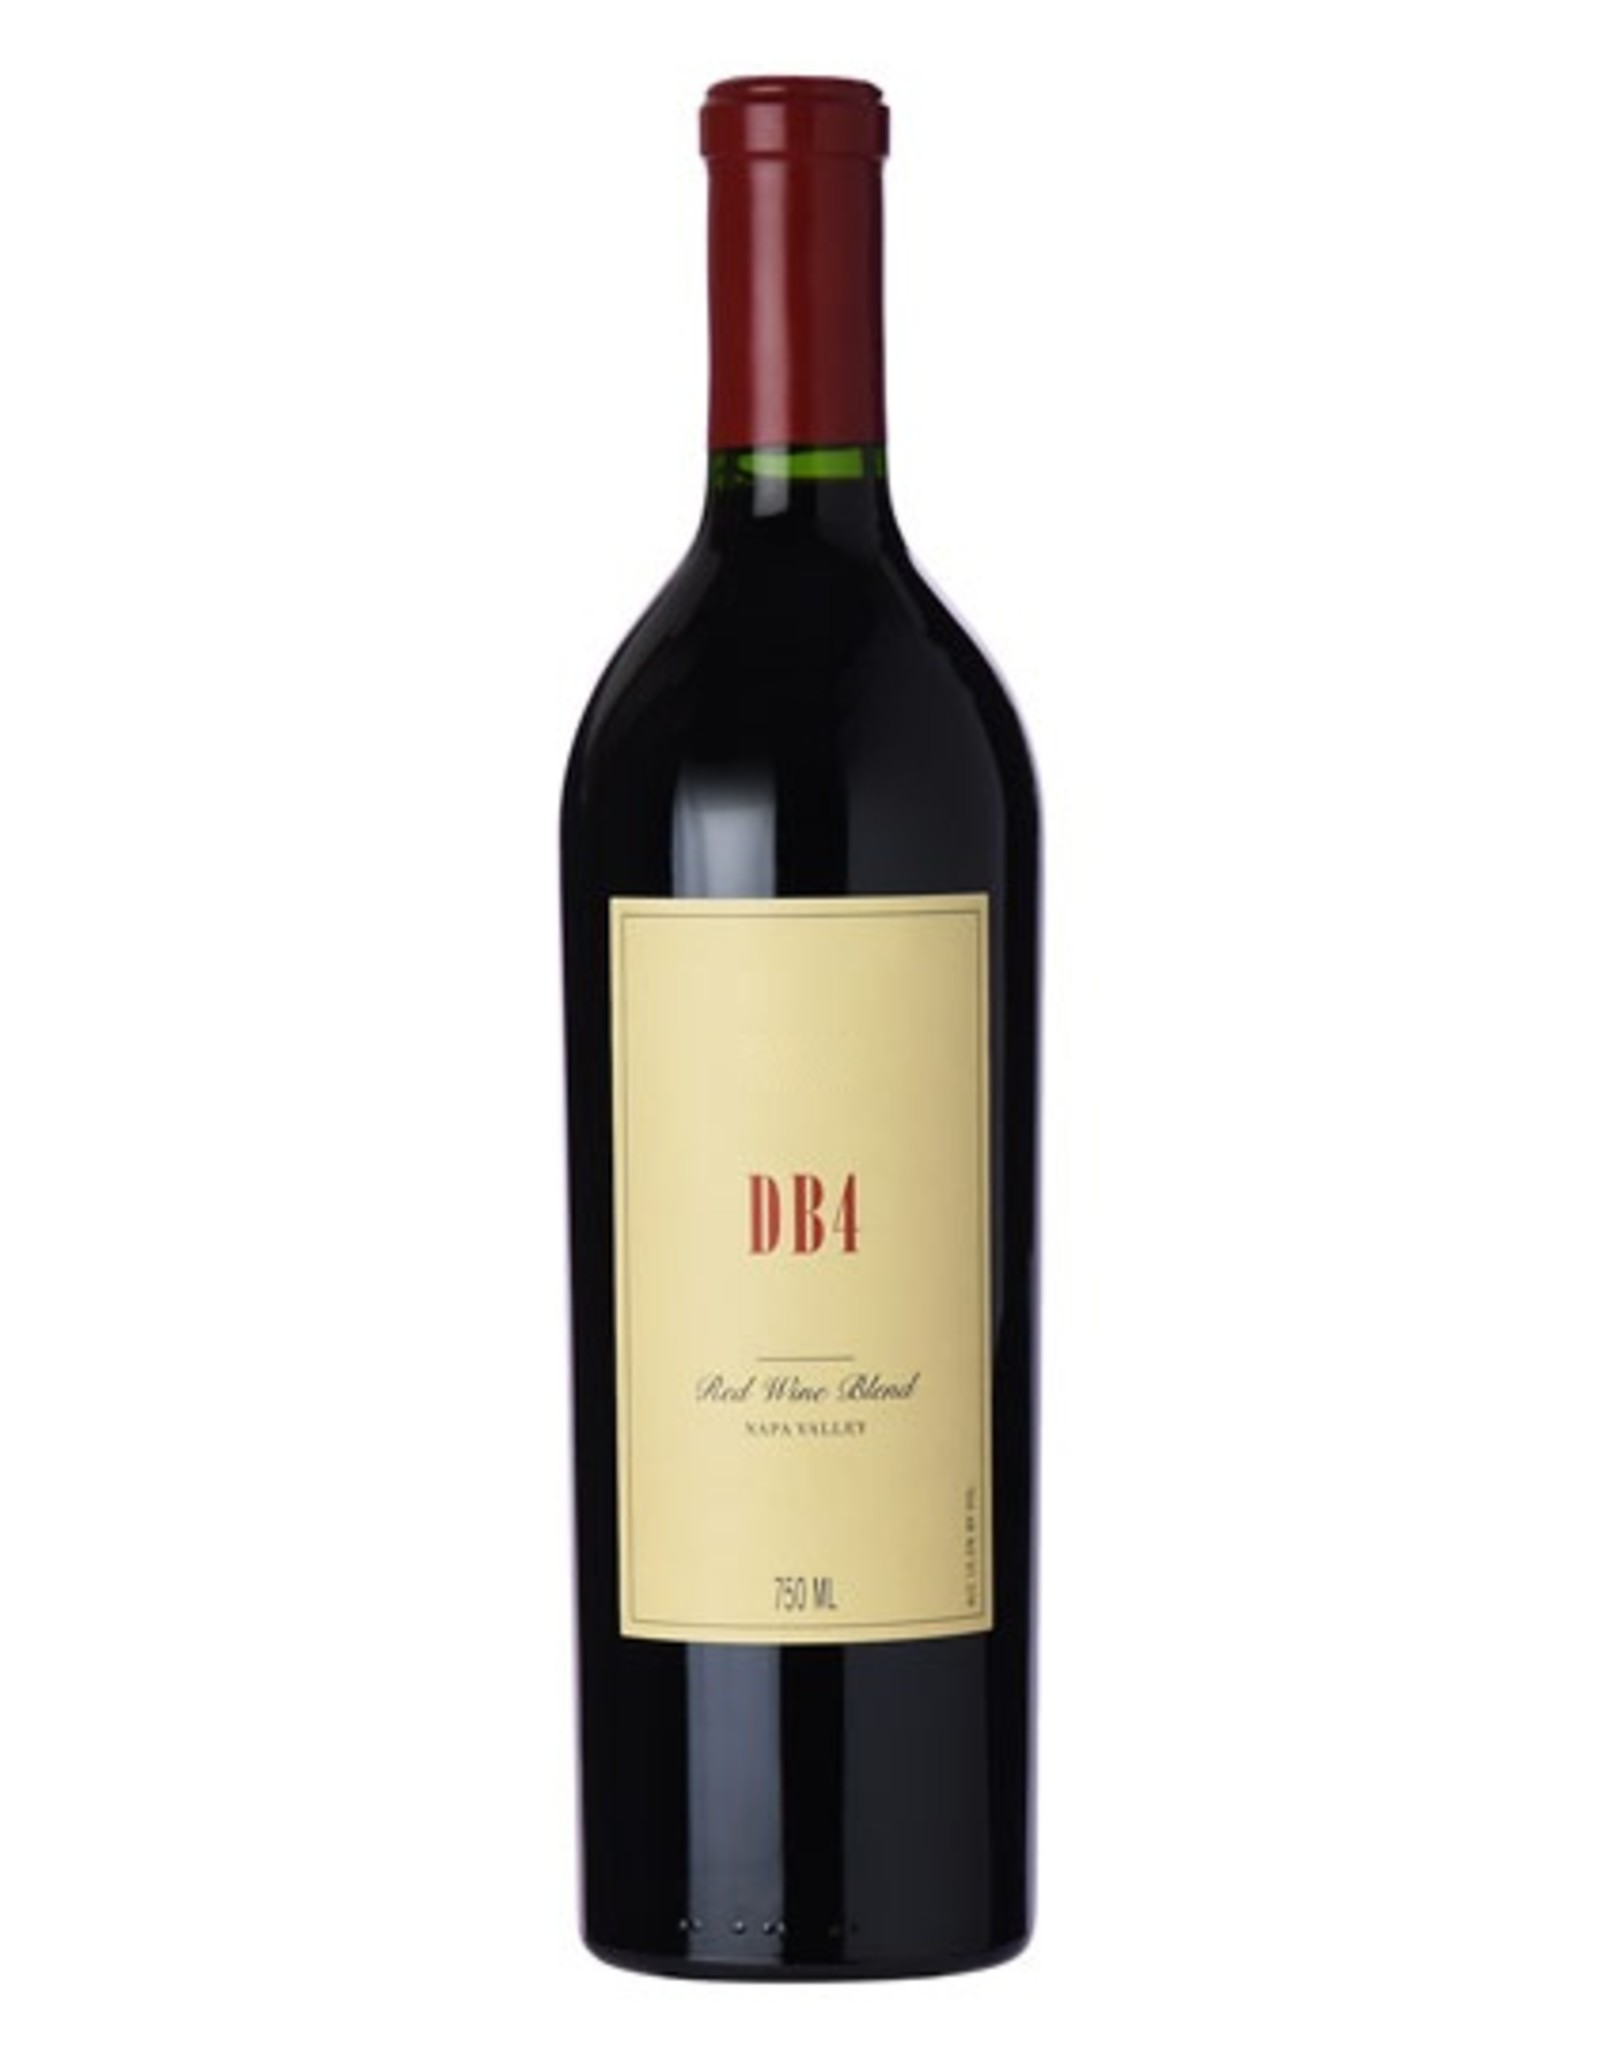 Red Wine 2015, Bryant Family DB4, Red Bordeaux Blend, Multi-regional Blend, Napa Valley, California, 15.3% Alc, CT94, WS92